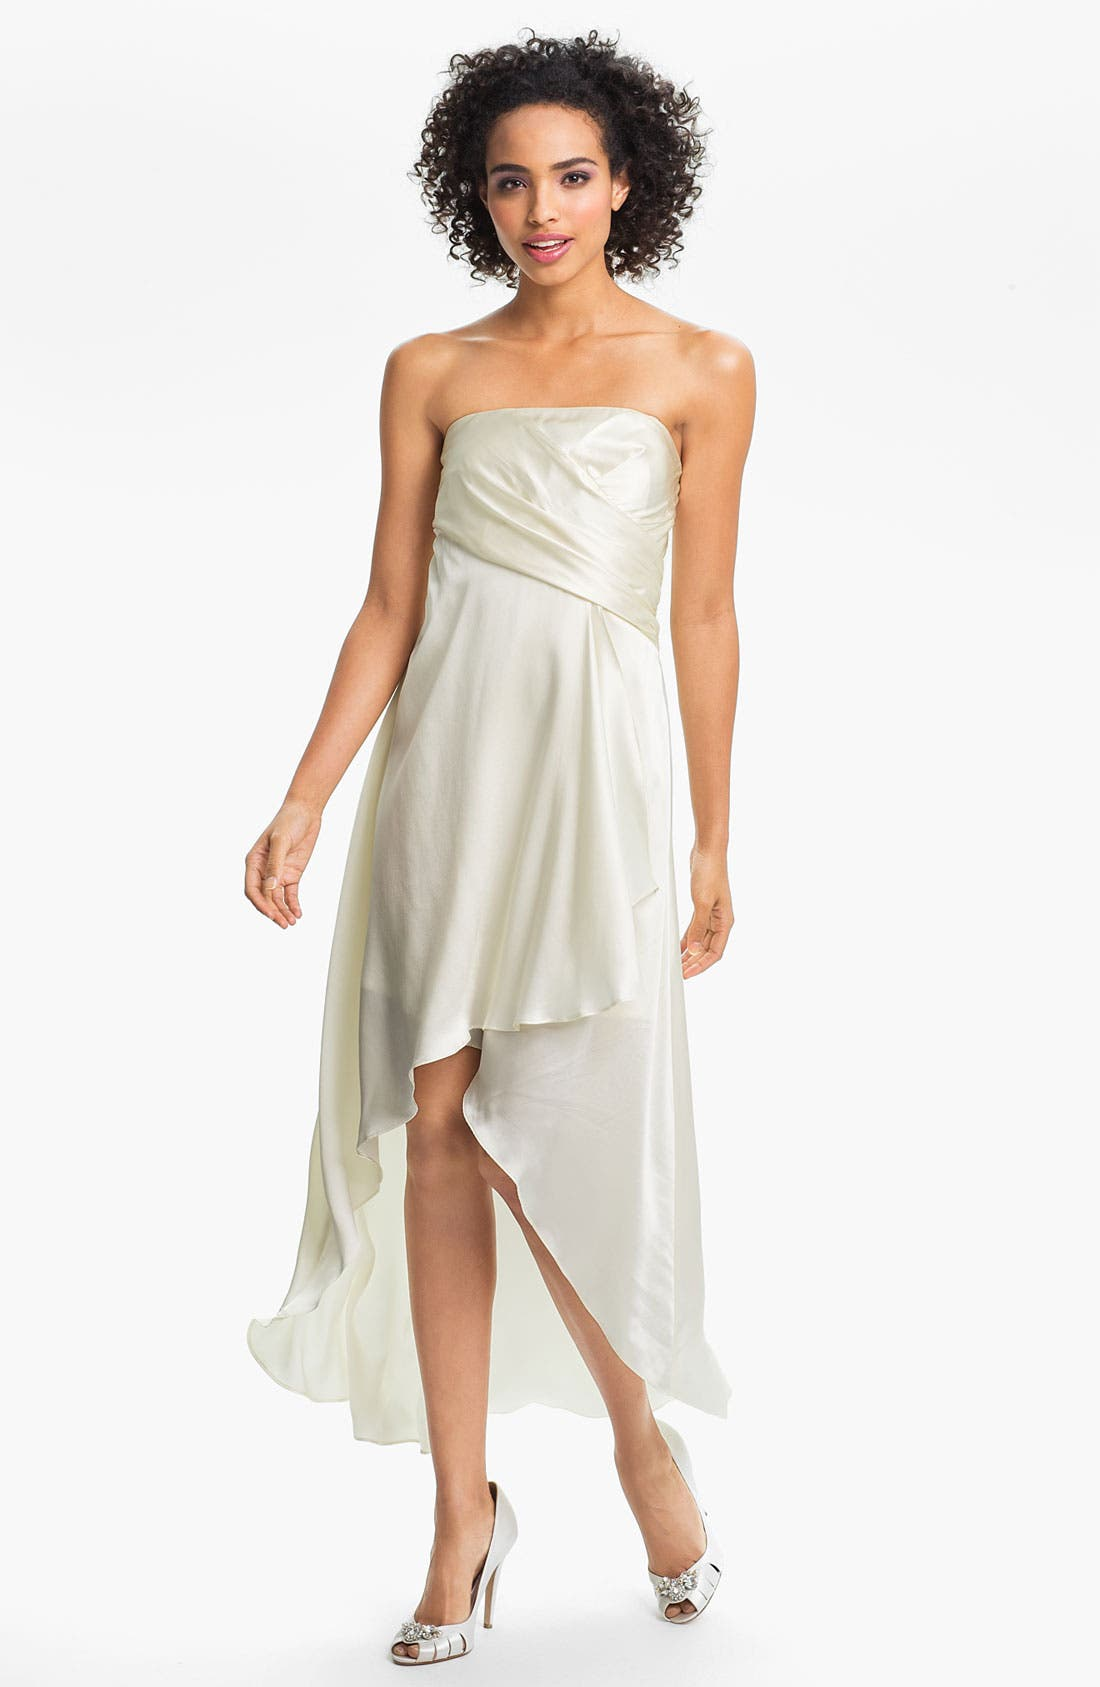 Alternate Image 1 Selected - Alexia Admor Strapless Silk Charmeuse Dress